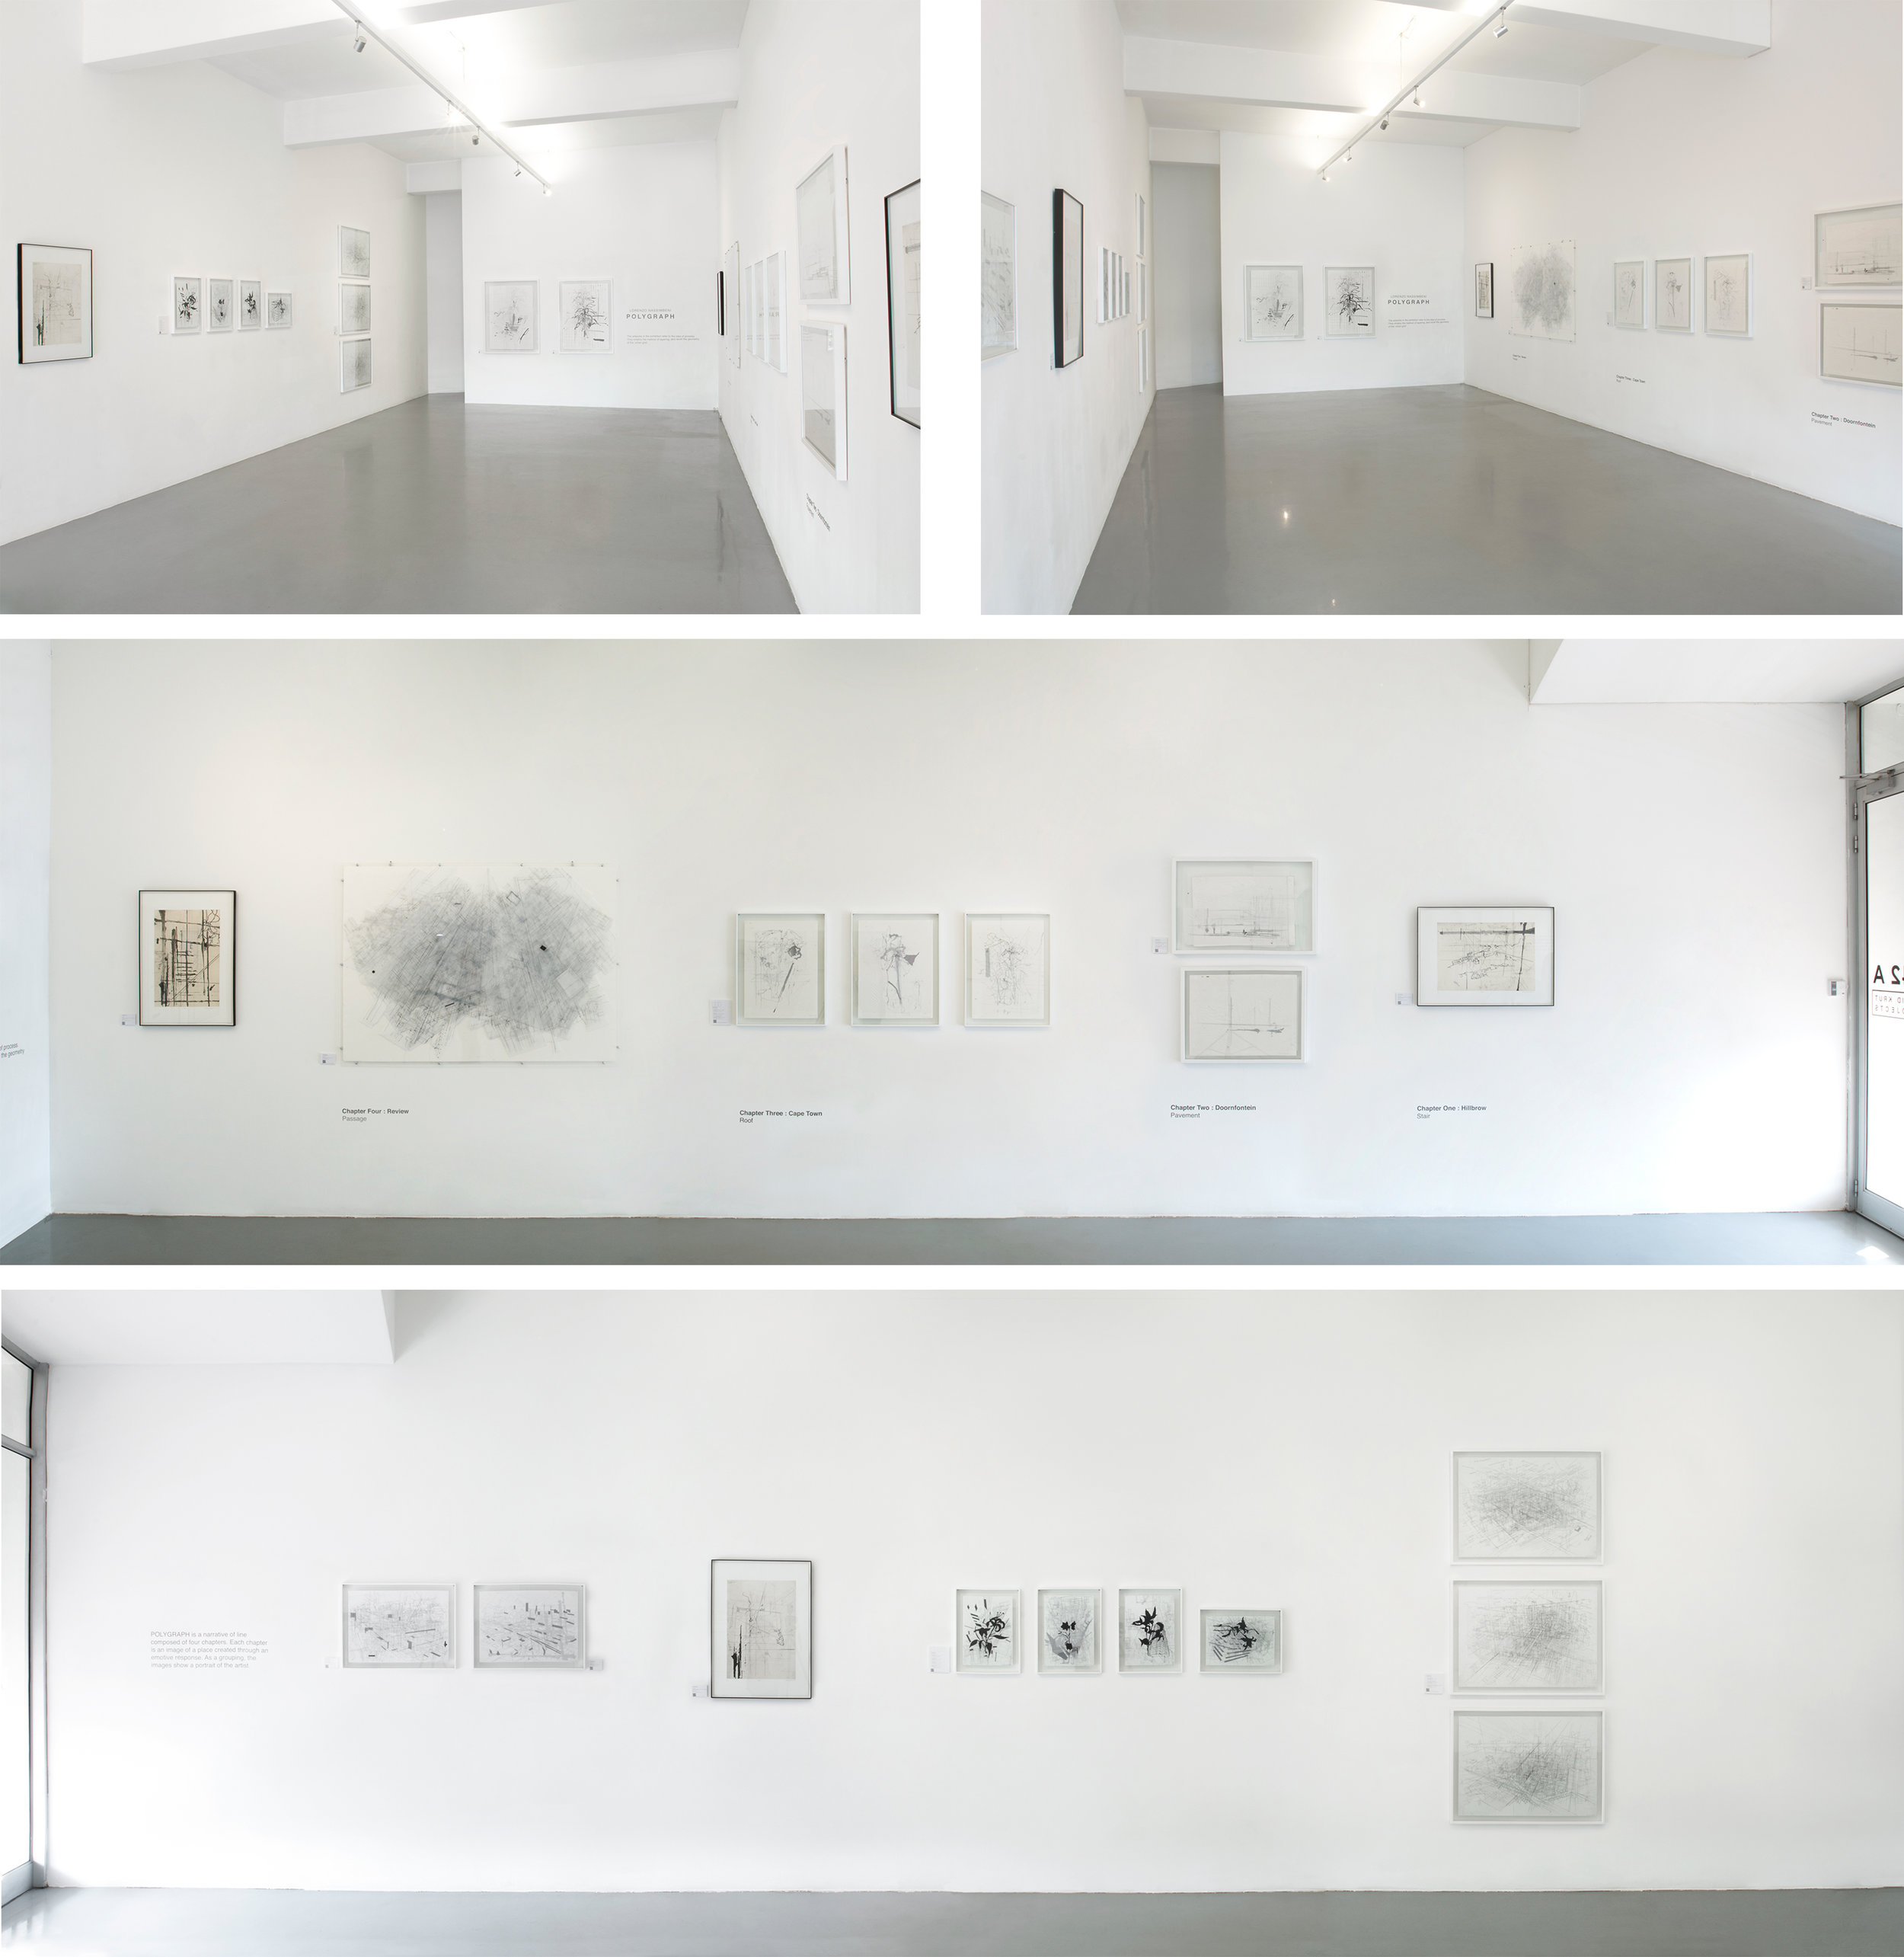 Polygraph exhibition David Krut Projects December 2018   Interior photographs of the exhibition, recently closed on 24 November 2018. The show was a great success, and many thanks to  David Krut Projects .